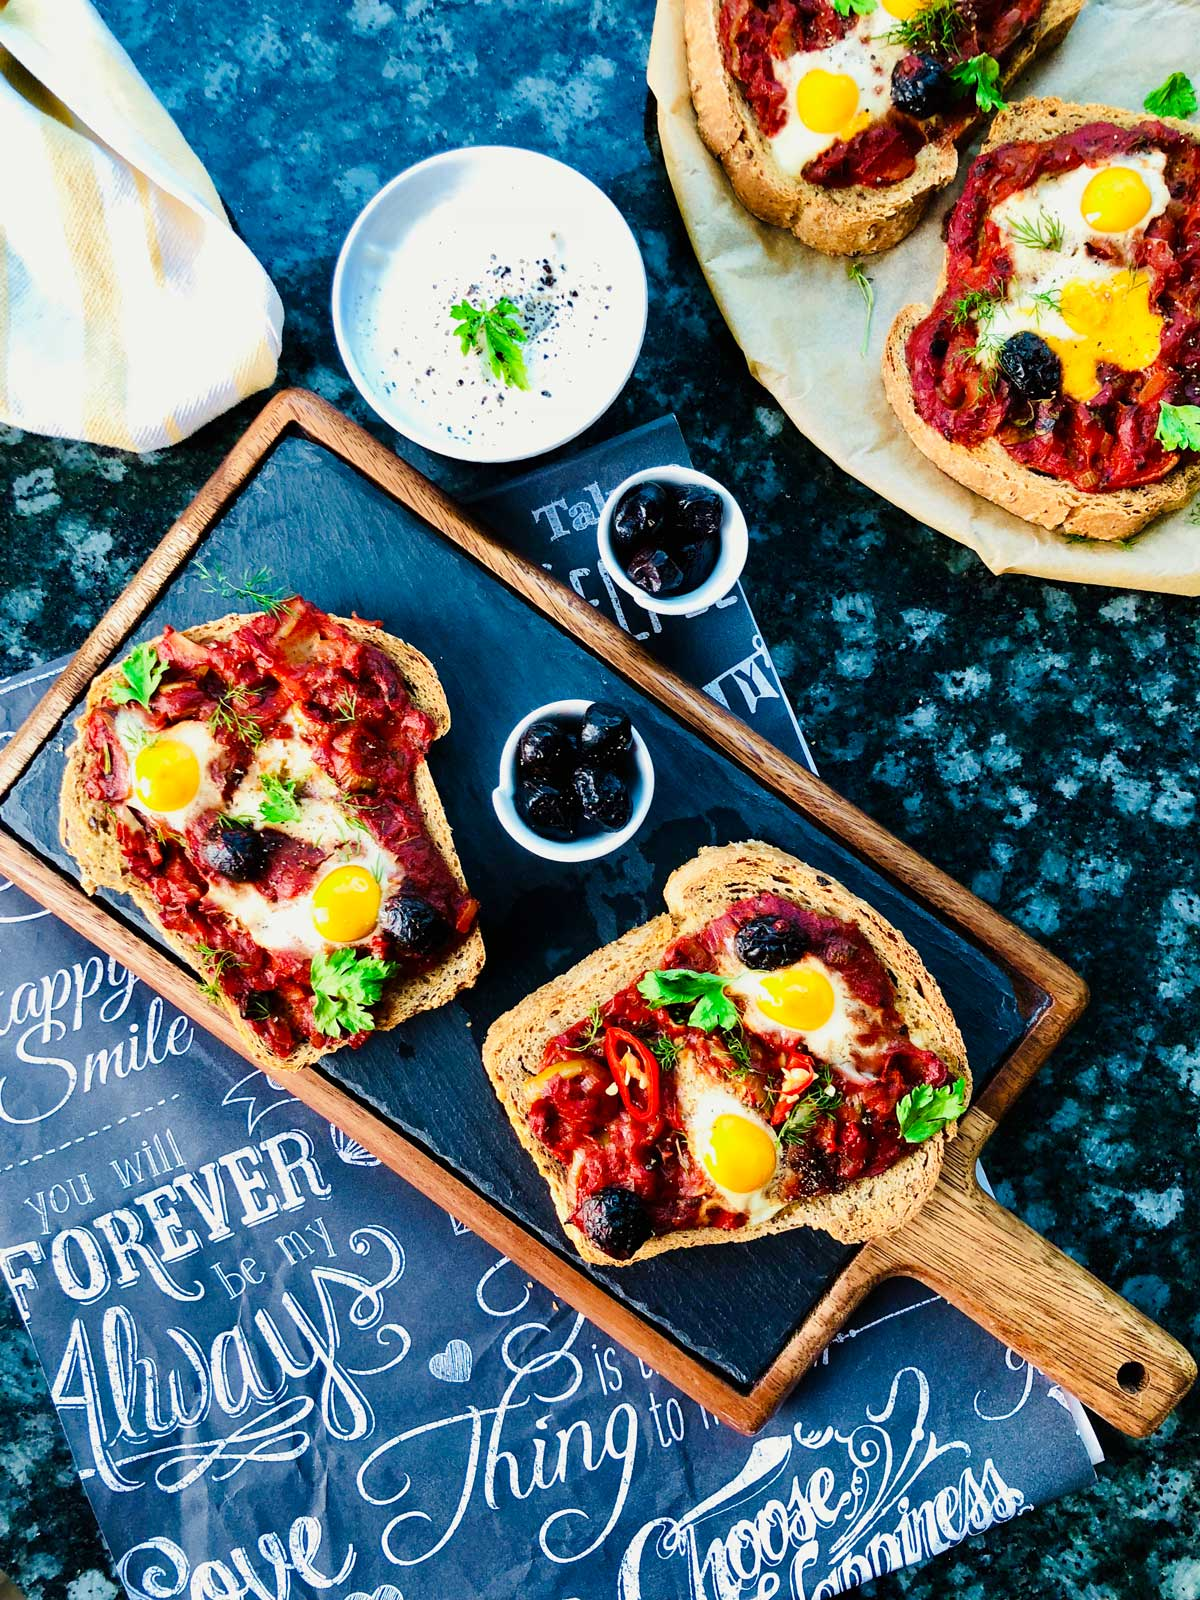 Pizza slices with quail eggs and tomato sauce